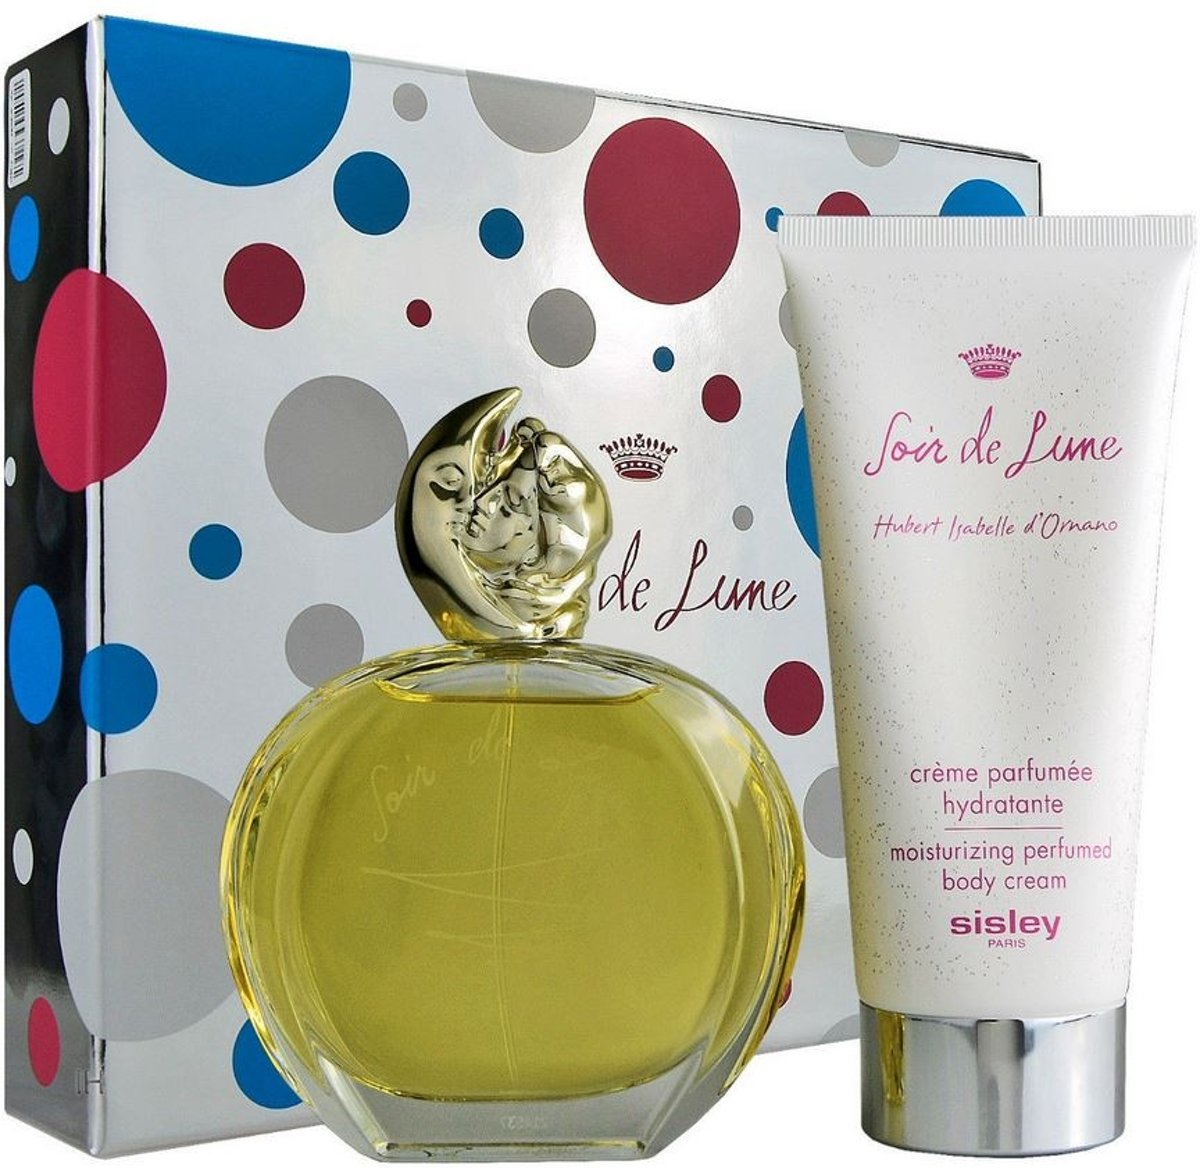 Sisley - Eau de parfum - Soir de lune 100ml eau de parfum + 150ml bodycream - Gifts ml